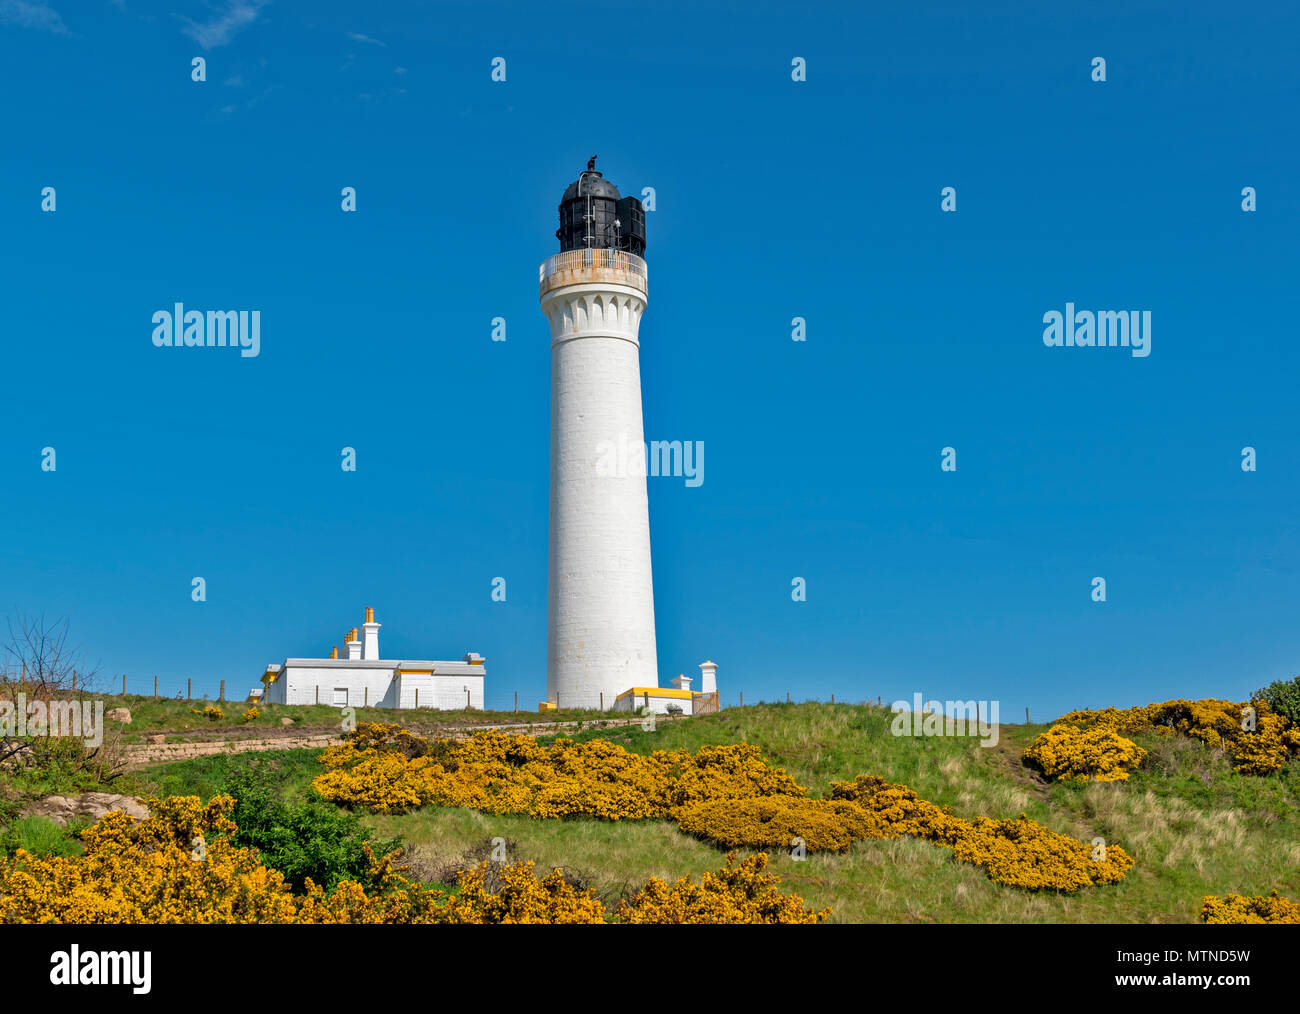 COVESEA LIGHTHOUSE LOSSIEMOUTH BEACH SCOTLAND WHITE COLUMN ON A HILL SURROUNDED BY YELLOW GORSE FLOWERS  AN EARLY MORNING IN SPRING WITH A BLUE SKY - Stock Image